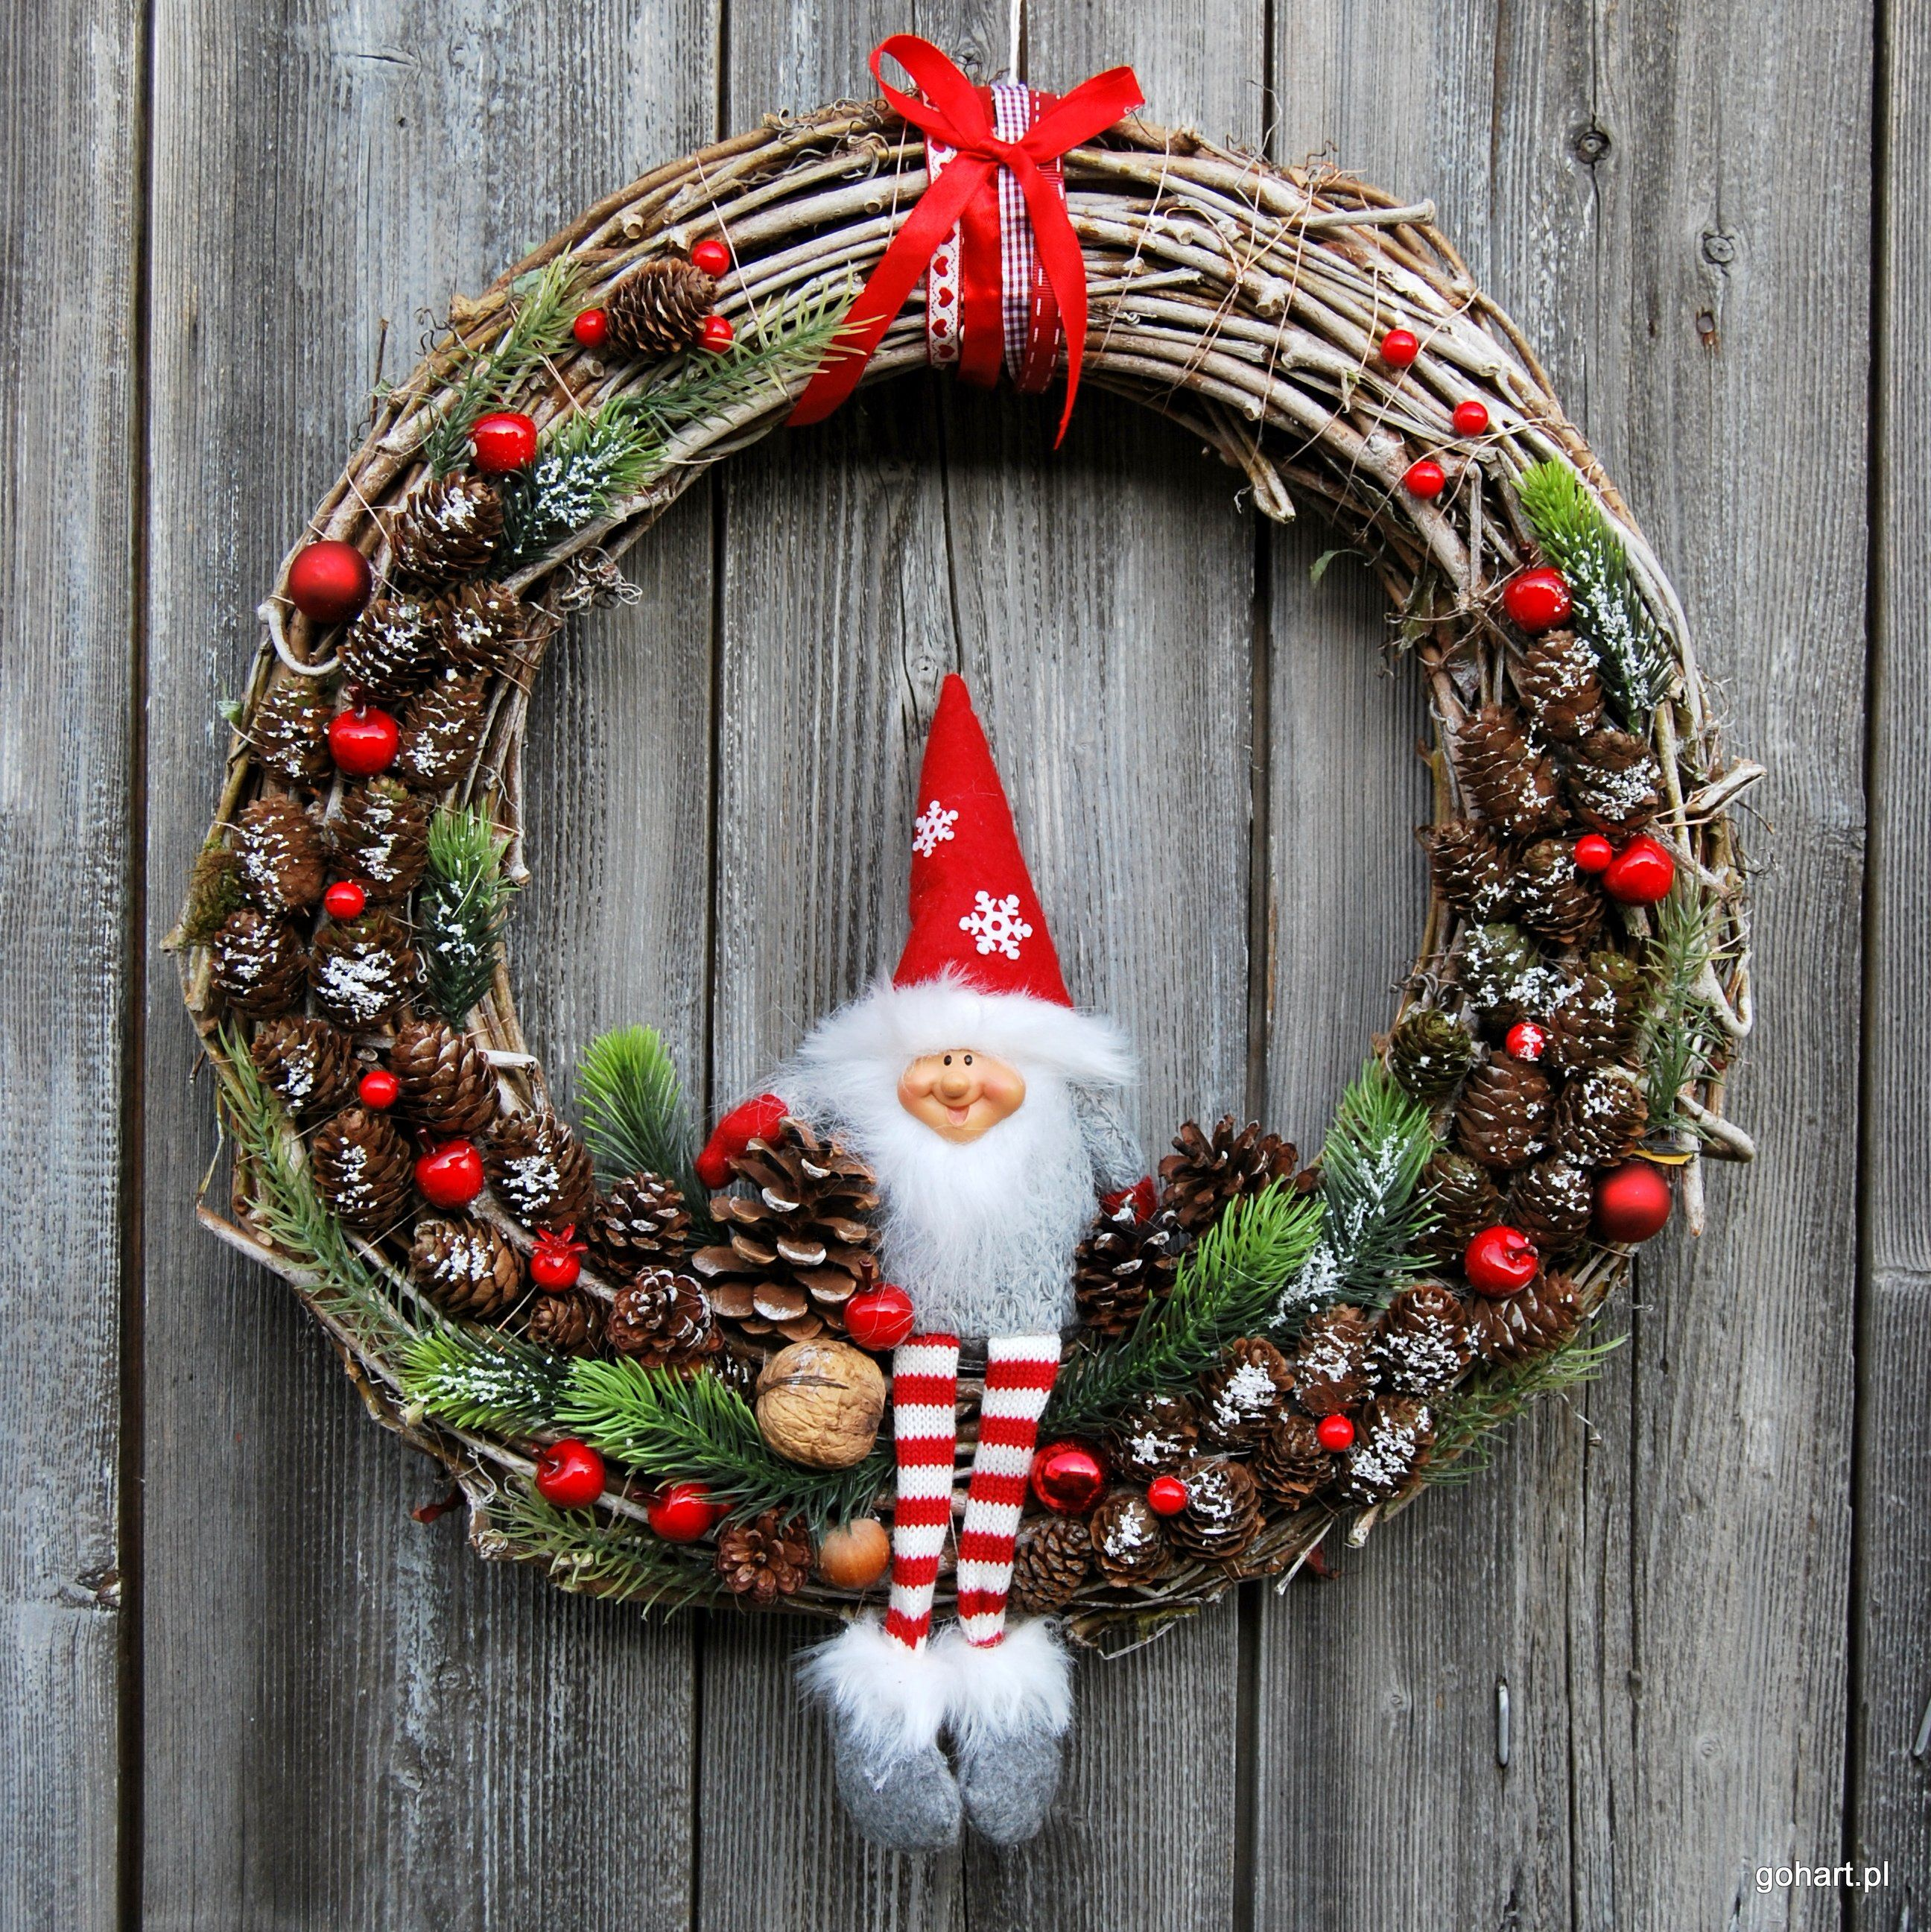 Duzy Wianek Na Drzwi Wianek Wieniec Wianek Adwentowy Wianek Dzikie Wino Wianek Lesny Skrzat De Christmas Decor Diy Chritmas Decorations Christmas Wreaths